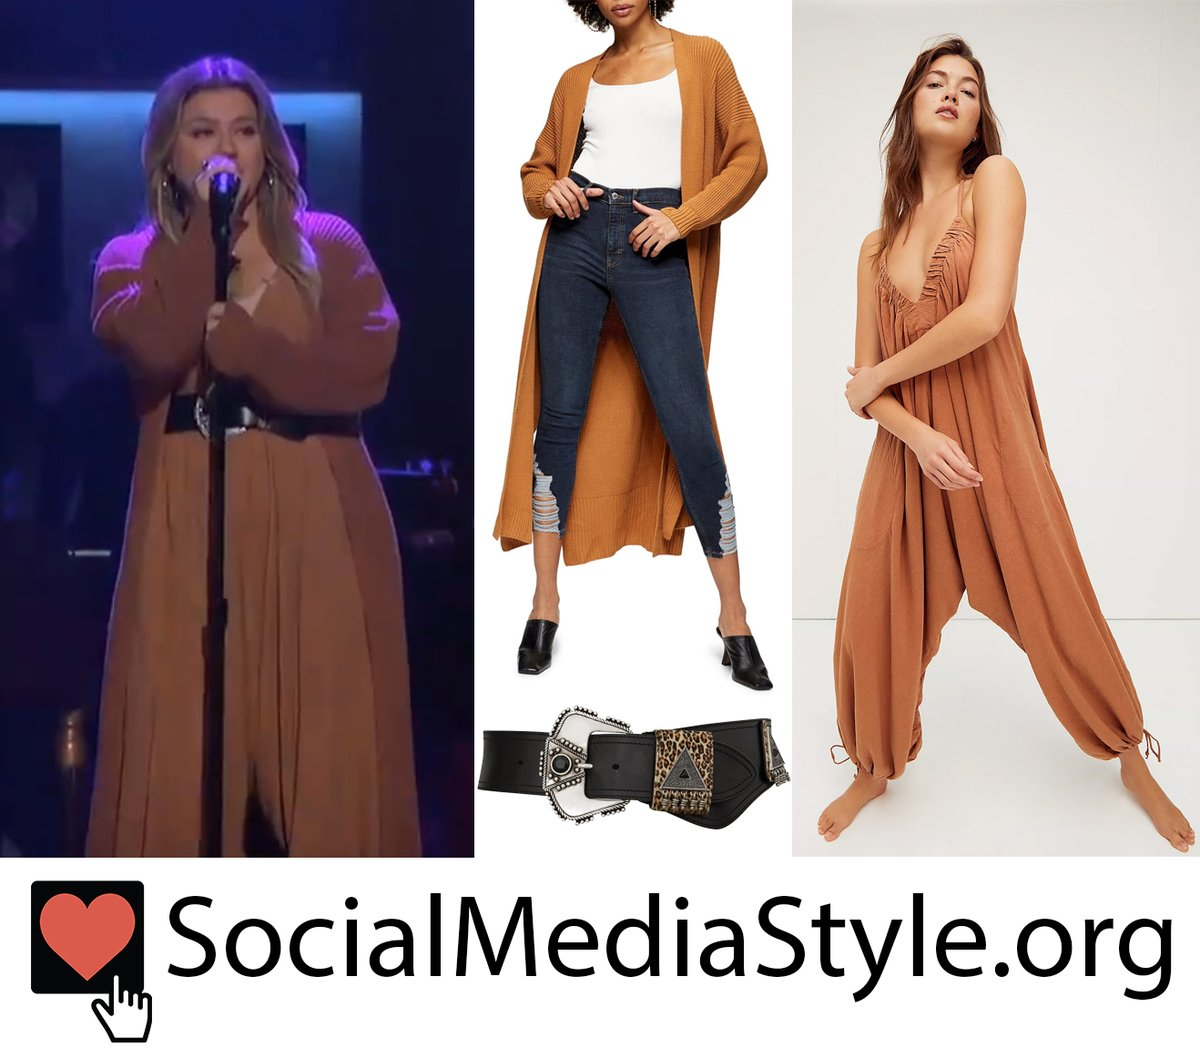 Buy @kellyclarkson's embellished belt and orange dropped crotch jumpsuit and long cardigan here:  #KellyClarkson #belt #droppedcrotch #dropcrotch #jumpsuit #longcardigan #dustercardigan #KellyClarksonShow #SaintLaurent #ysl #FreePeople #Topshop